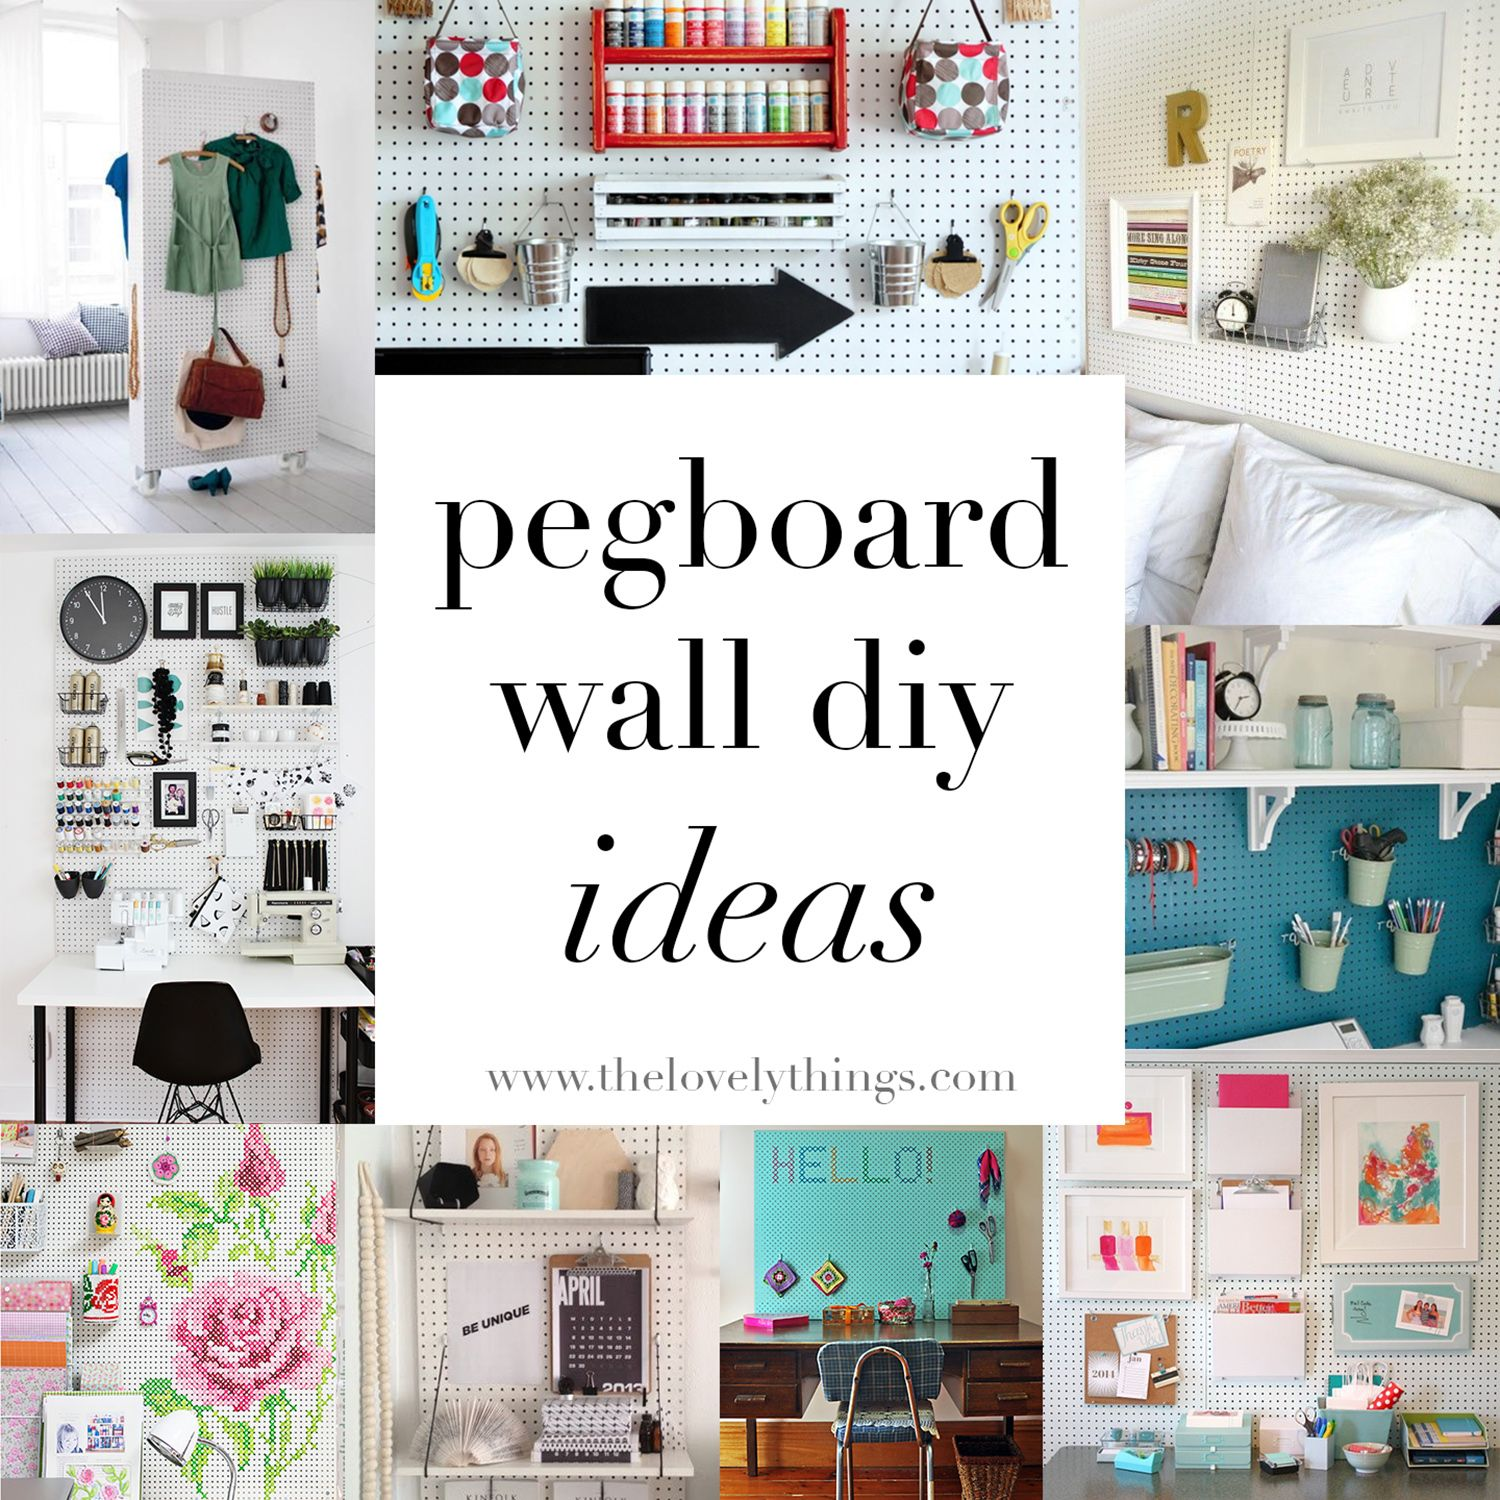 Pegboard Wall Ideas // www.thelovelythings.com